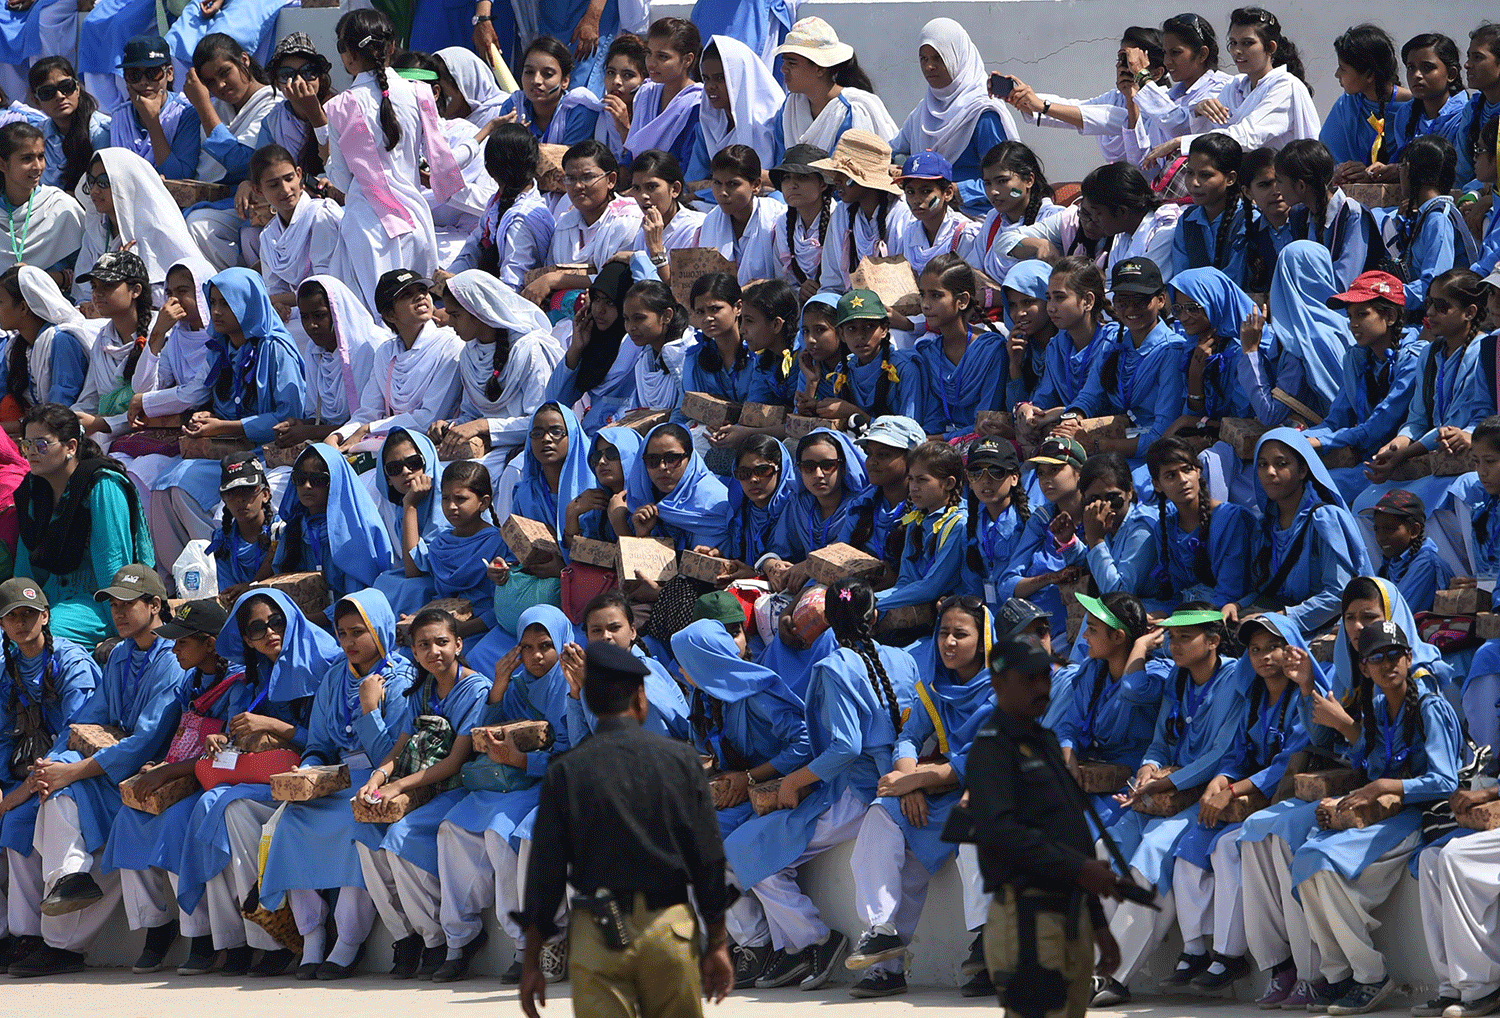 Pakistani students watch the second and final women's One Day International (ODI) cricket match between Pakistan and Bangladesh at the Southend Club in Karachi on October 6, 2015. — AFP